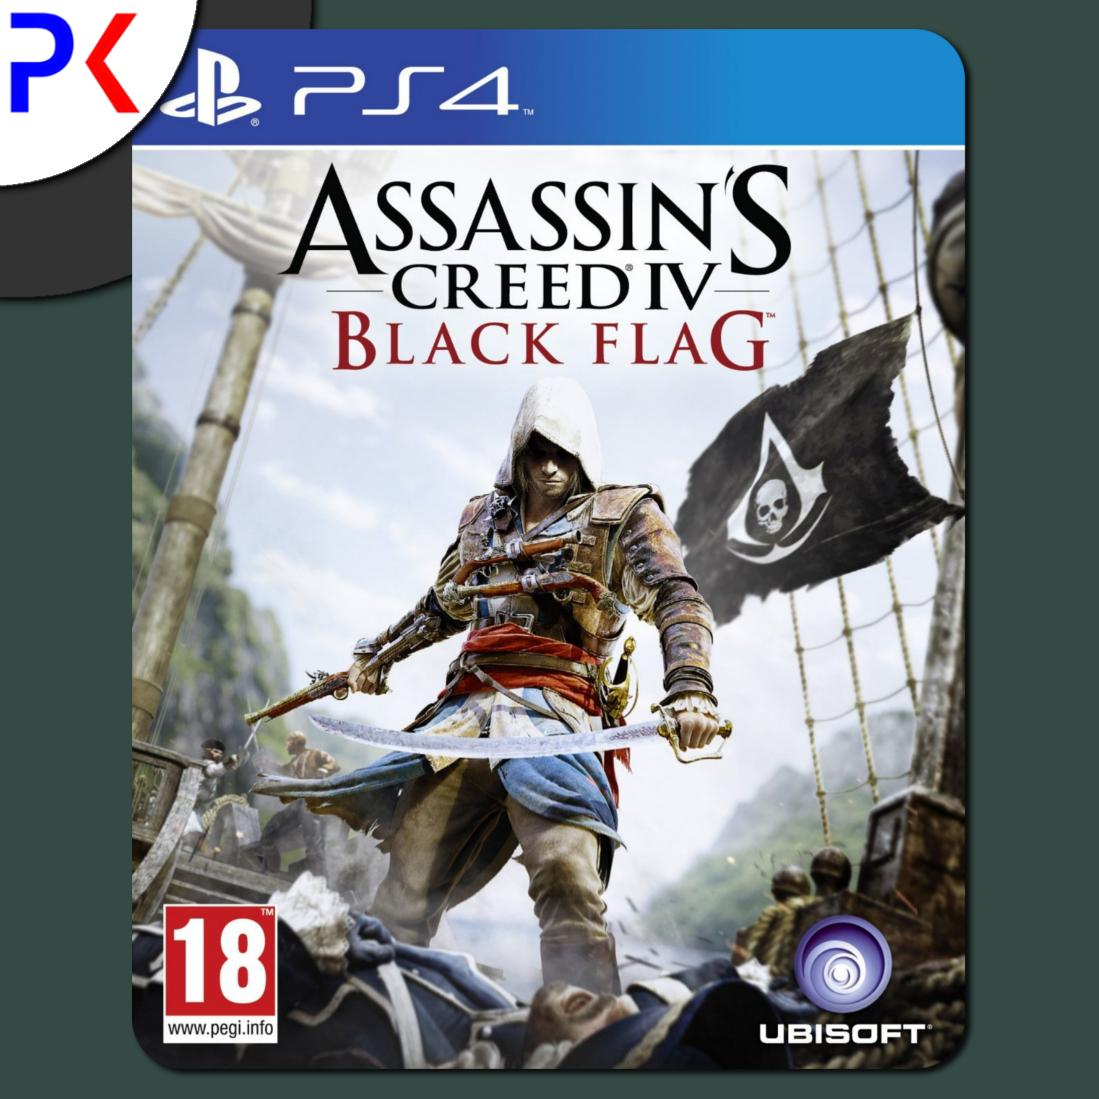 Compare Price Ps4 Assassin S Creed Iv Black Flag R1 On Singapore